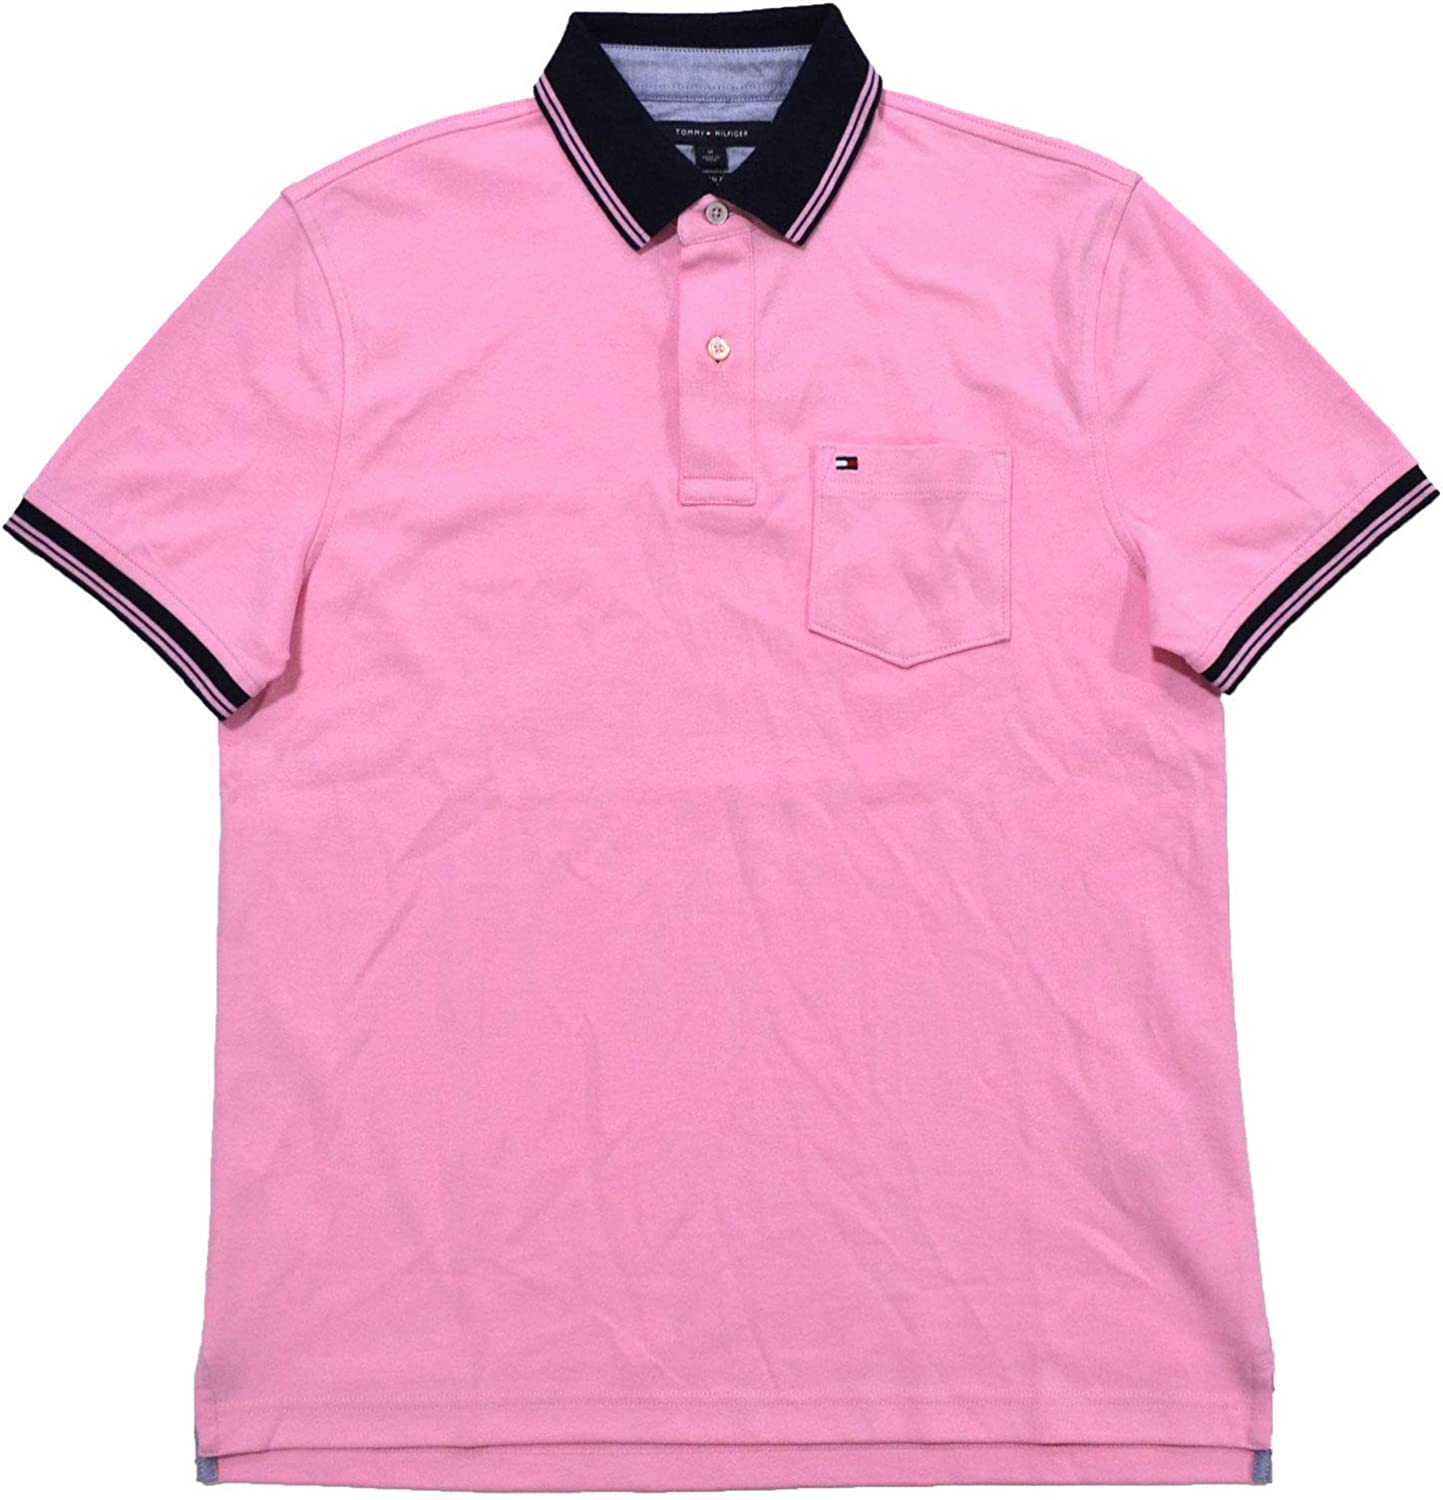 Tommy Hilfiger Mens Custom Fit Interlock Pocket Polo Shirt